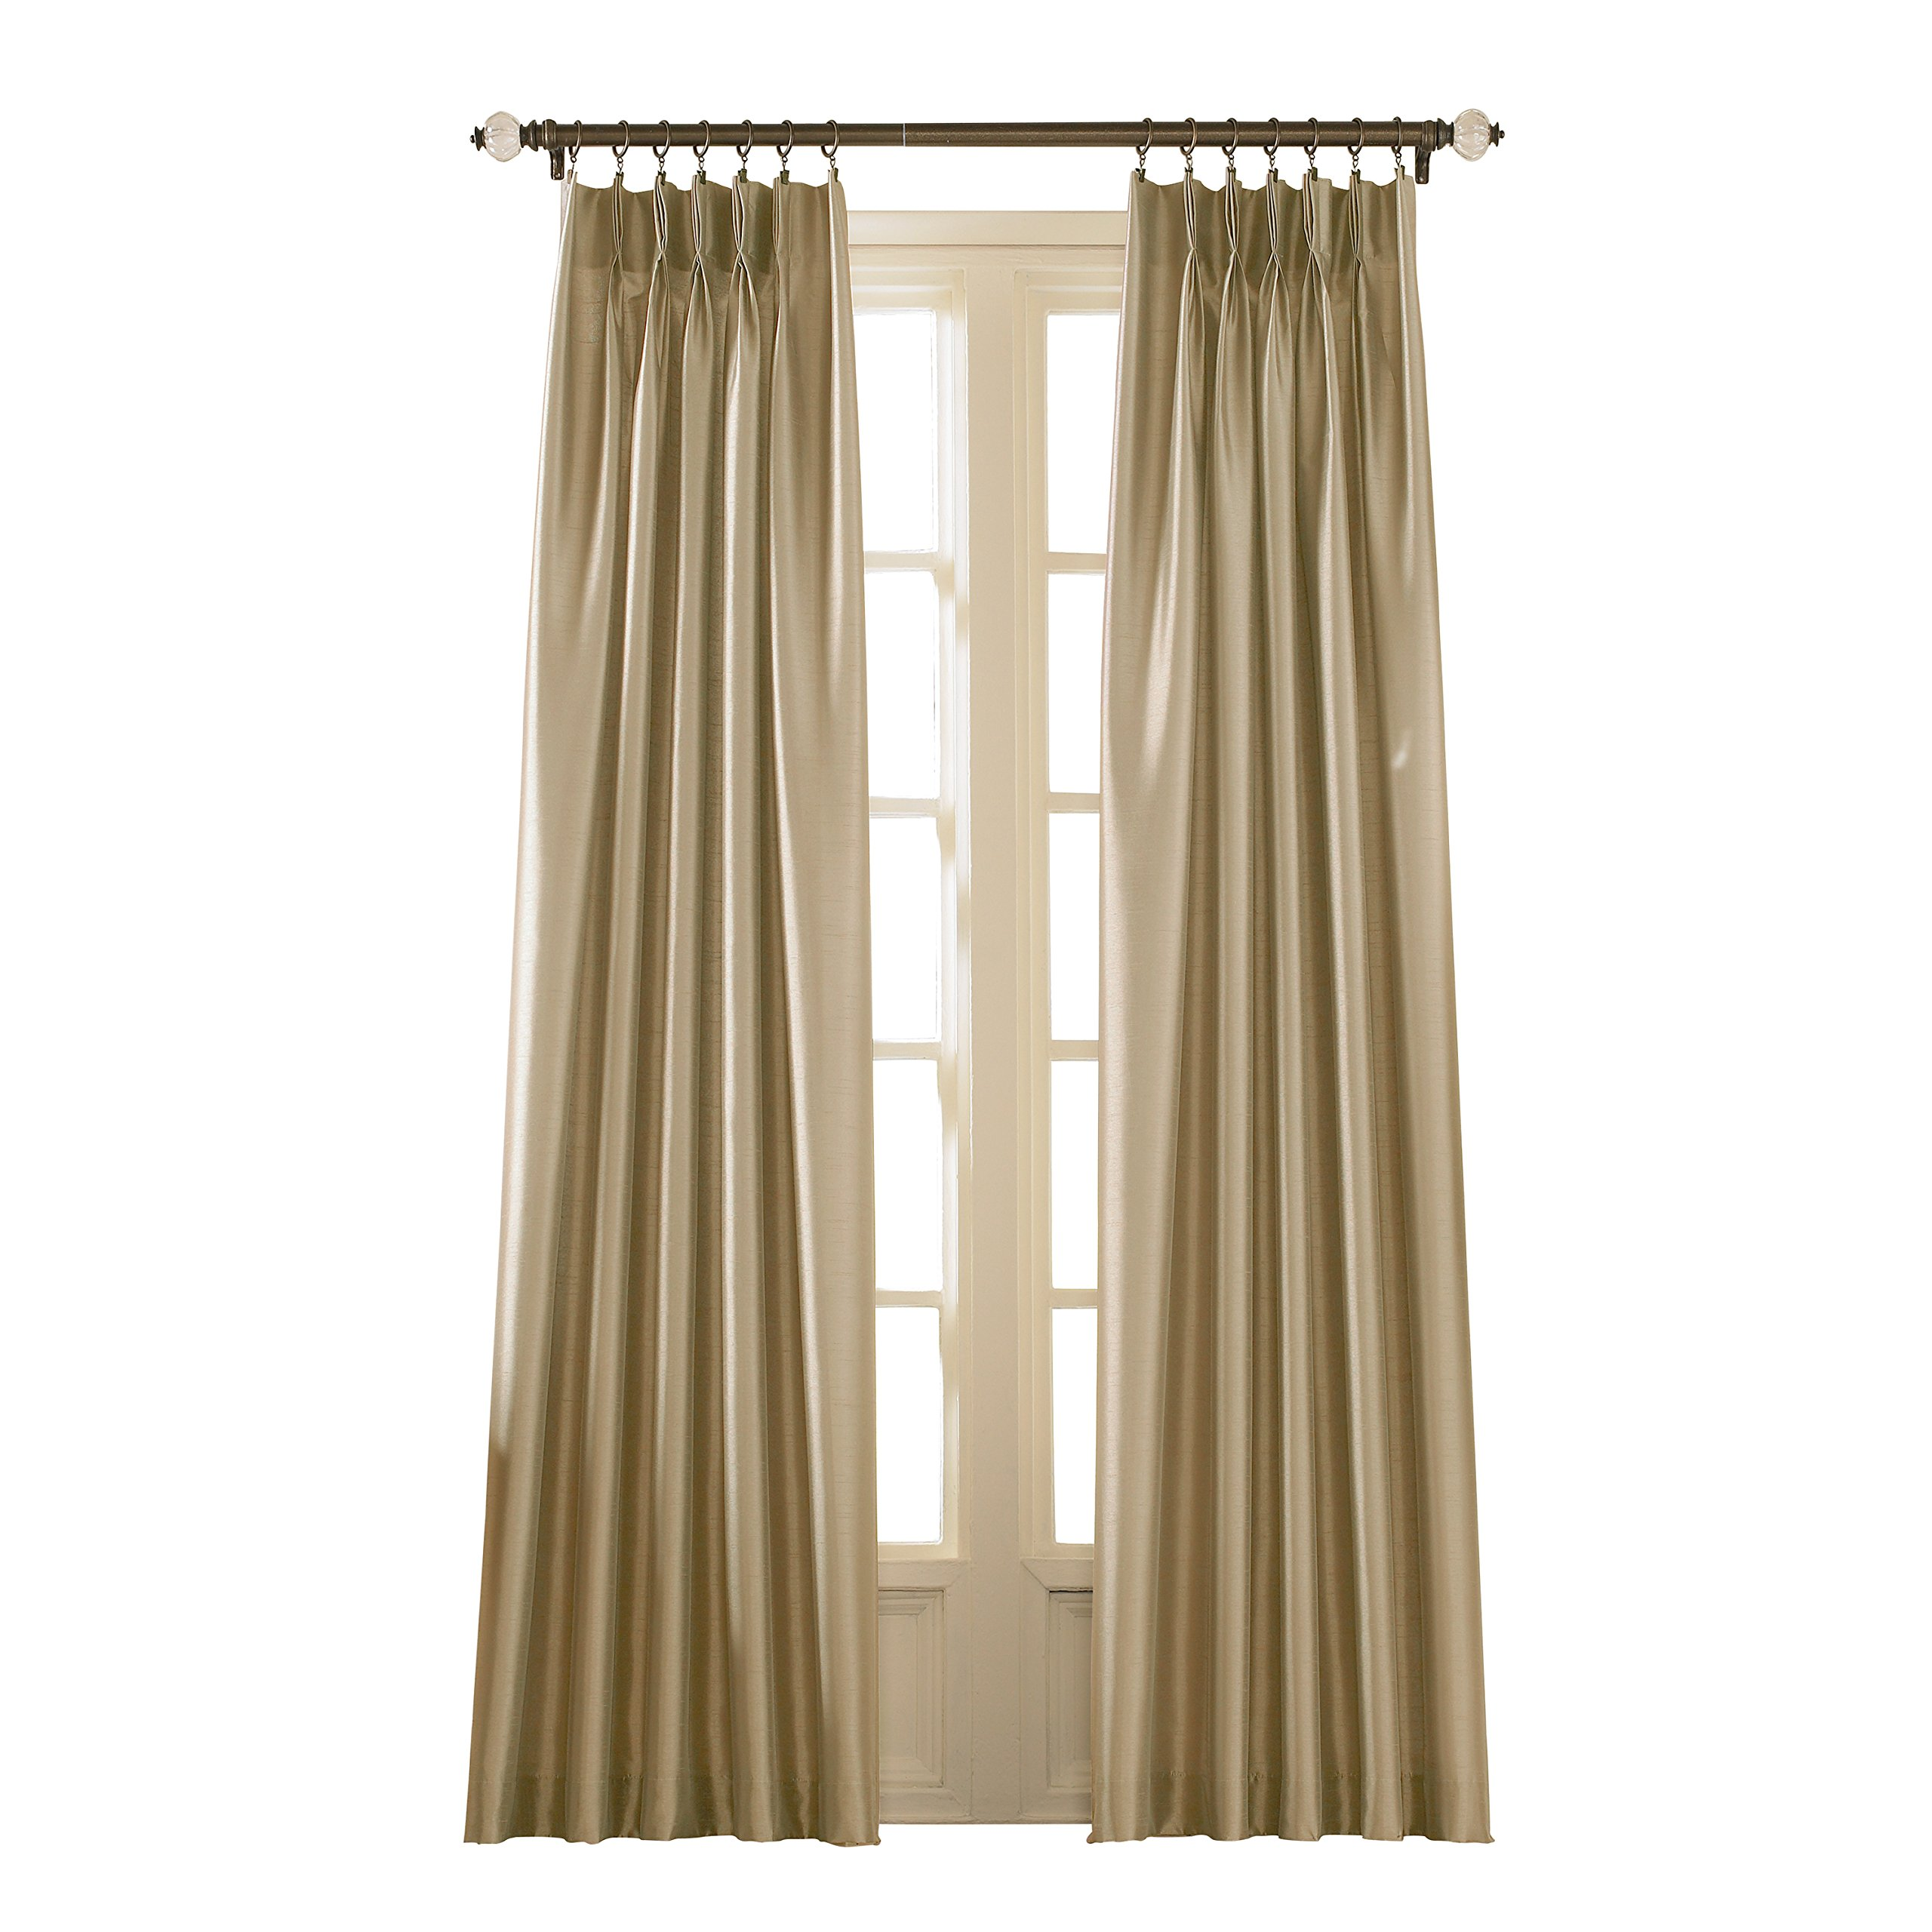 "Construction Time Lined Curtains: Curtainworks Marquee Curtain Panel 30 By 108"" Sand"